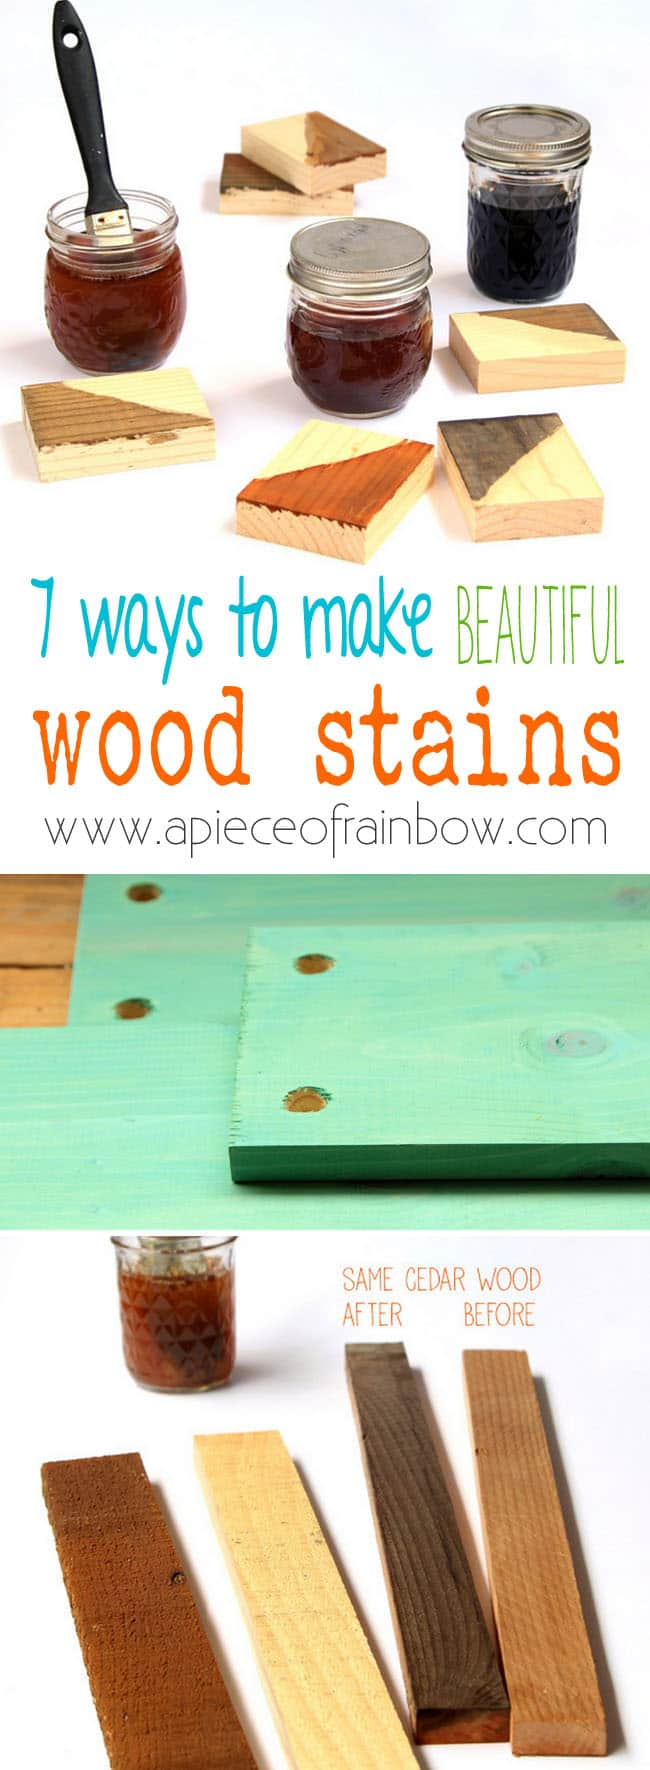 7 recipes to make wood stains in any color using natural household materials! These quick and easy wood stains are super effective, long lasting, low cost, and non-toxic!